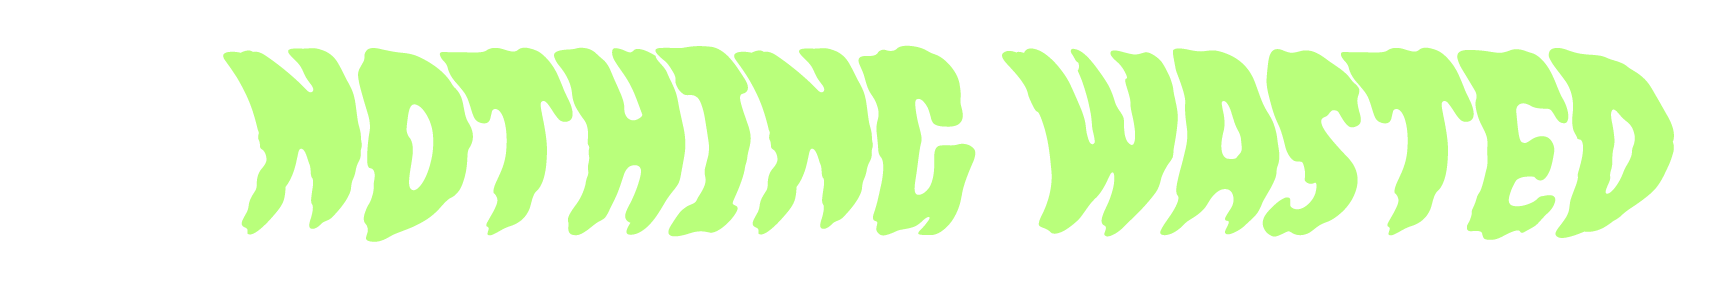 NOTHING WASTED LOGO-02.png